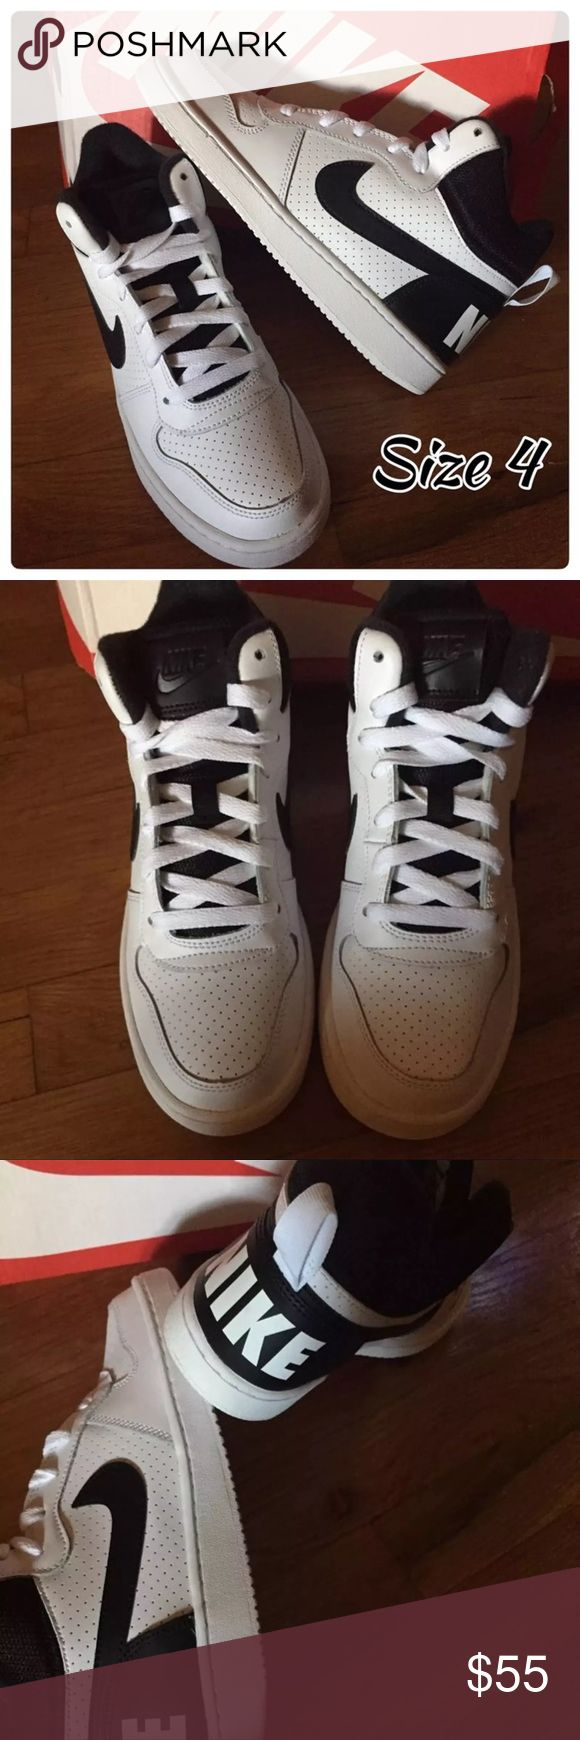 Youth 4 Nike NIB New in Box!! Ships Fast! Youth 4 Big kids Girls , Boys Nike Sneakers Mid Tops , white and Black Happy to Bundle! Nike Shoes Sneakers